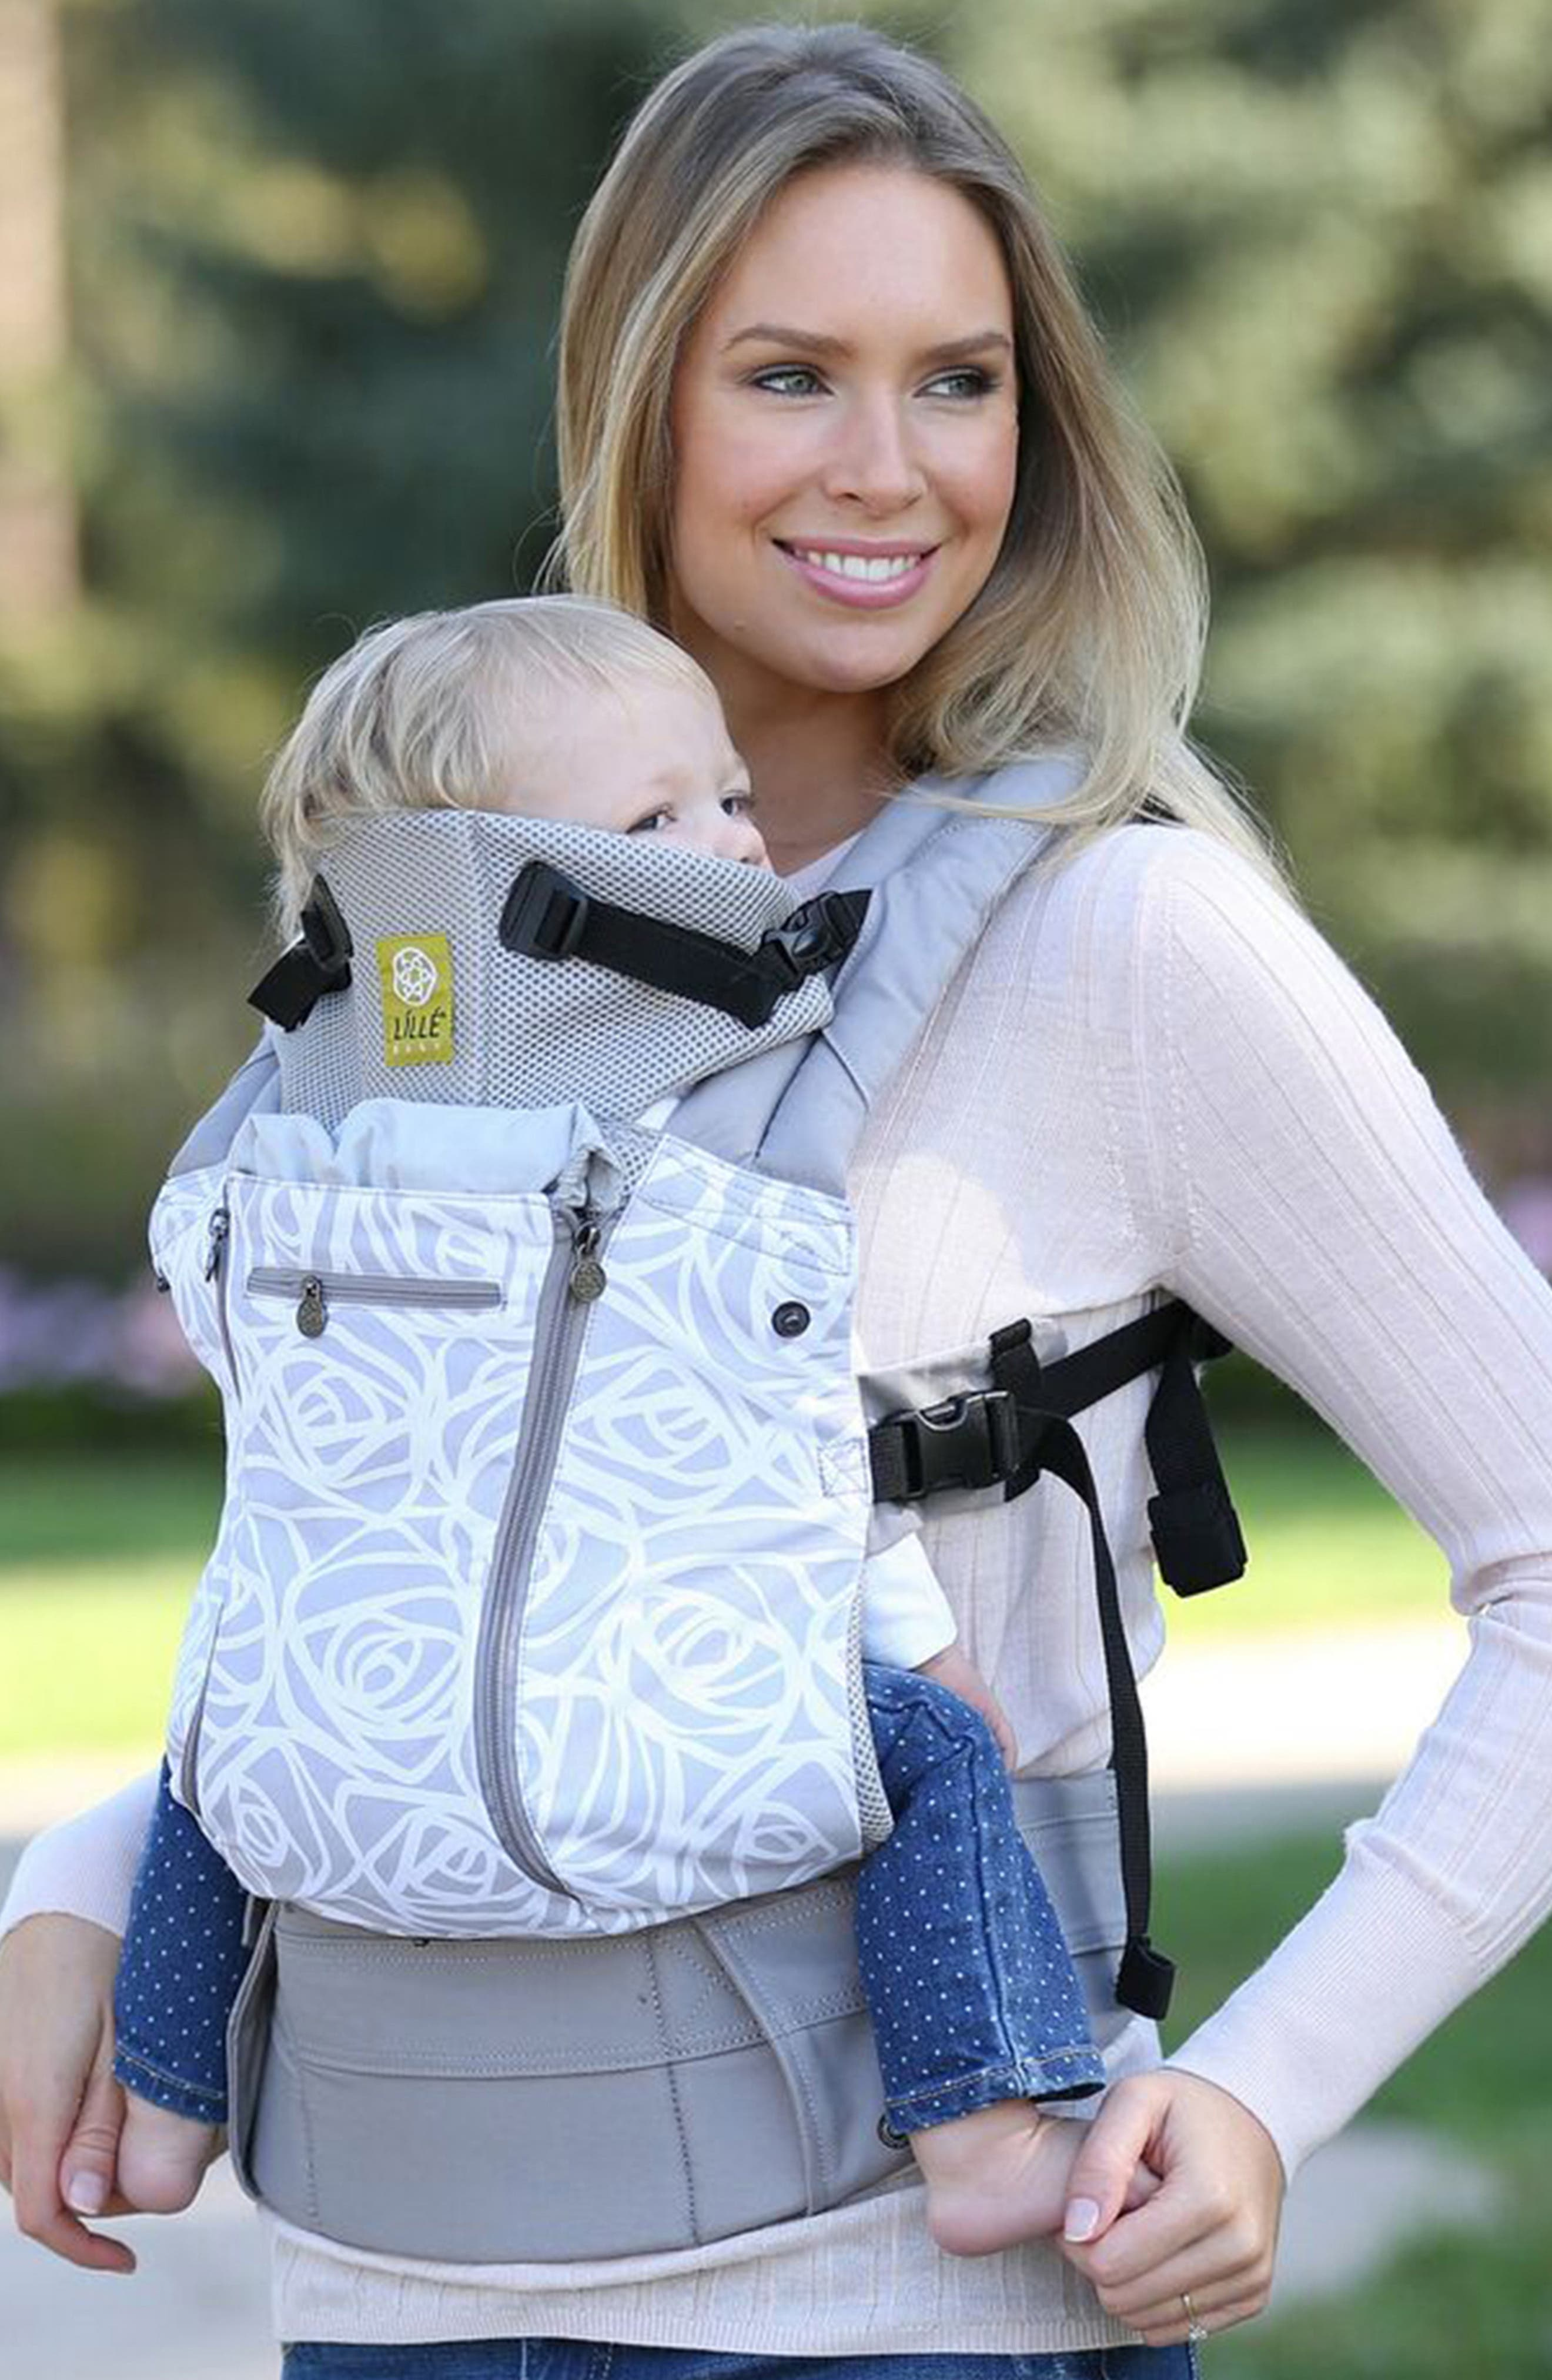 All Seasons - Frosted Rose Baby Carrier,                             Alternate thumbnail 2, color,                             FROSTED ROSE